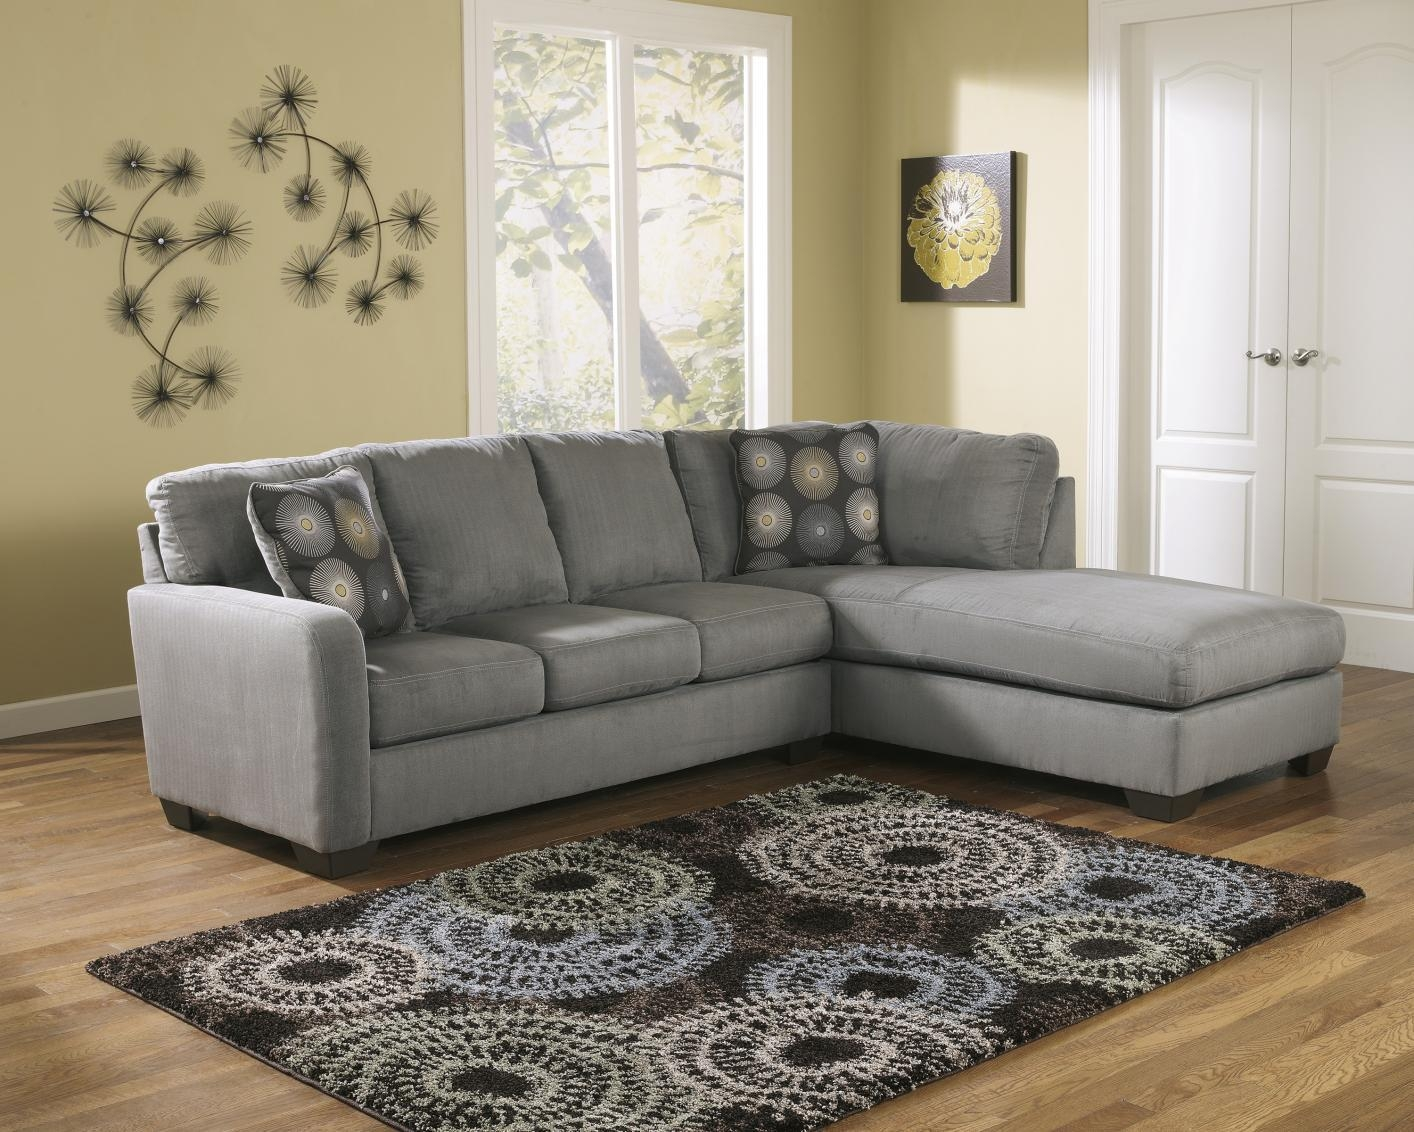 Grey Fabric Sectional Sofa – Steal A Sofa Furniture Outlet Los For Sectional Sofas Los Angeles (View 1 of 20)